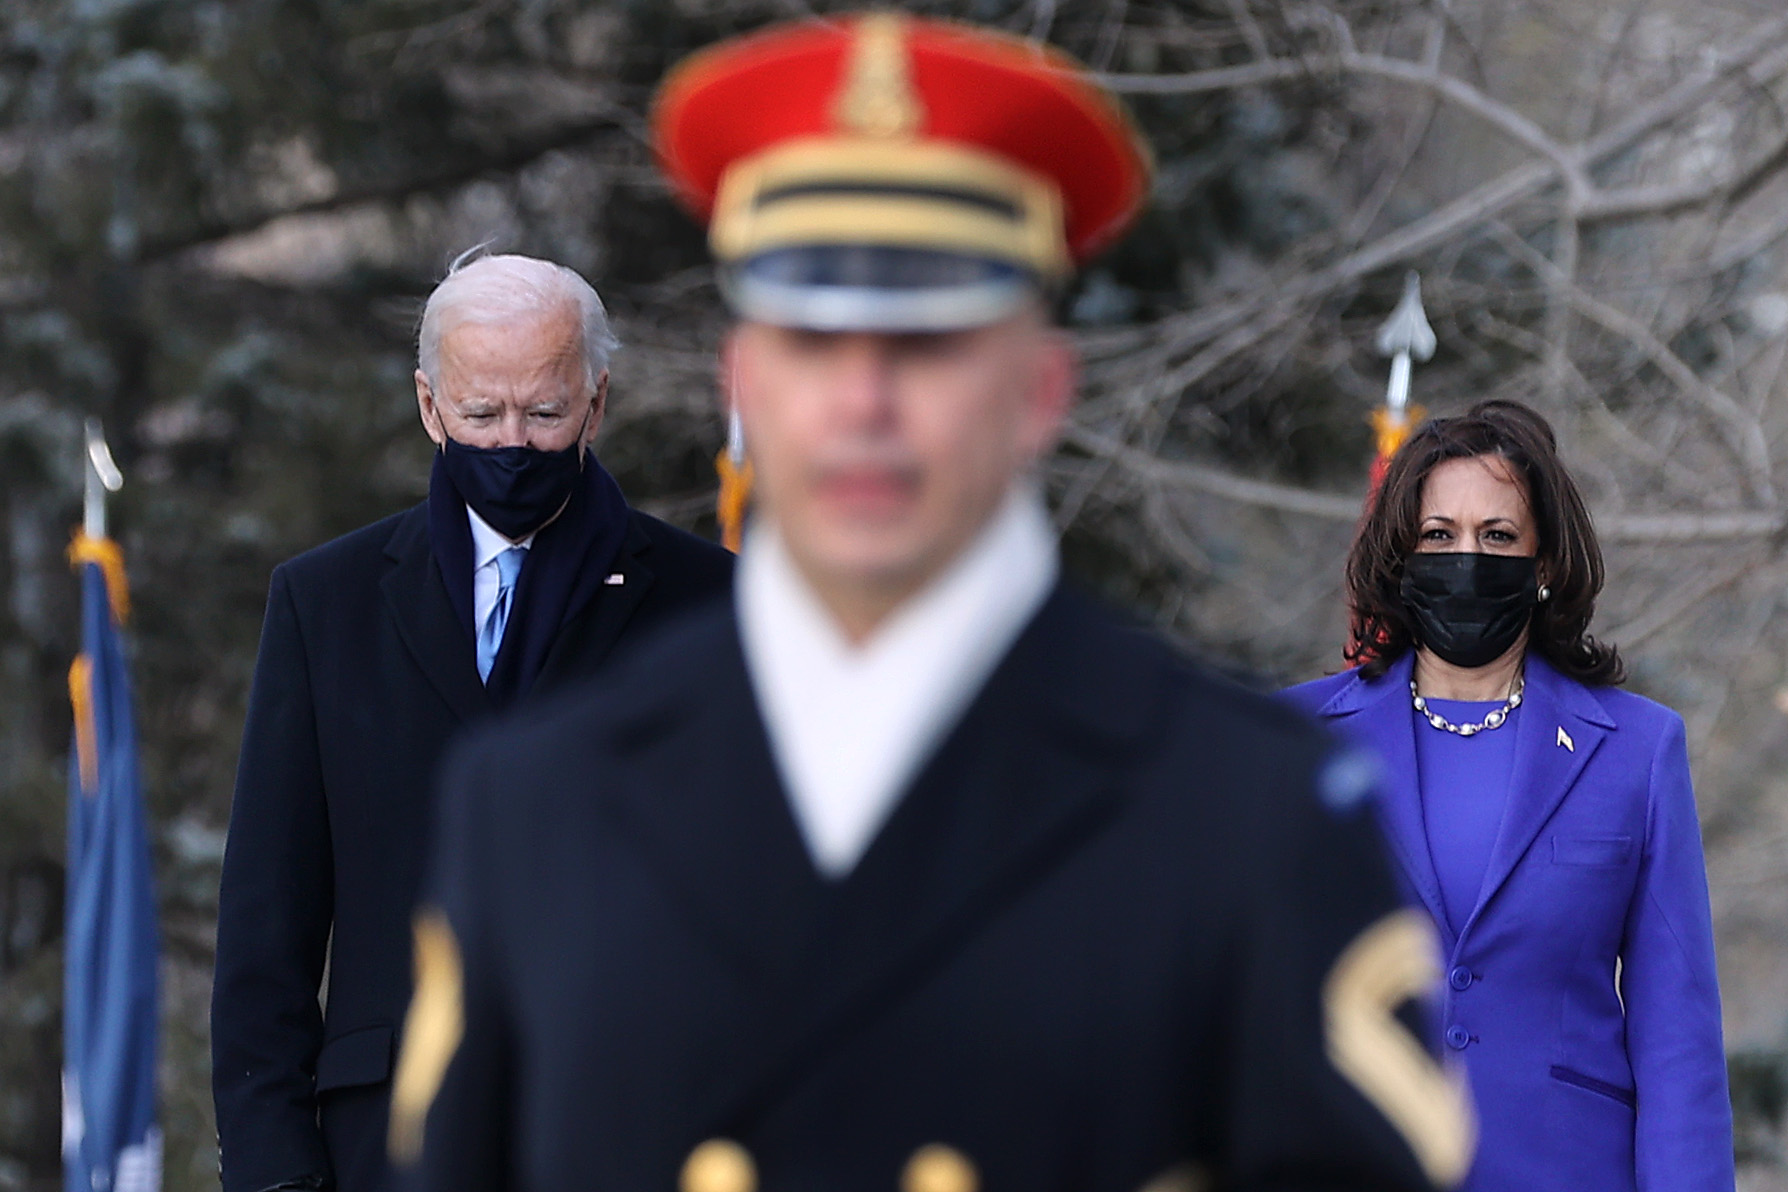 President Joe Biden and Vice President Kamala Harris attend a wreath-laying ceremony at Arlington National Cemetery's Tomb of the Unknown Soldier after the 59th Presidential Inauguration ceremony at the Capitol Jan. 20, 2021, in Arlington, Va. (Chip Somodevilla/Getty Images)